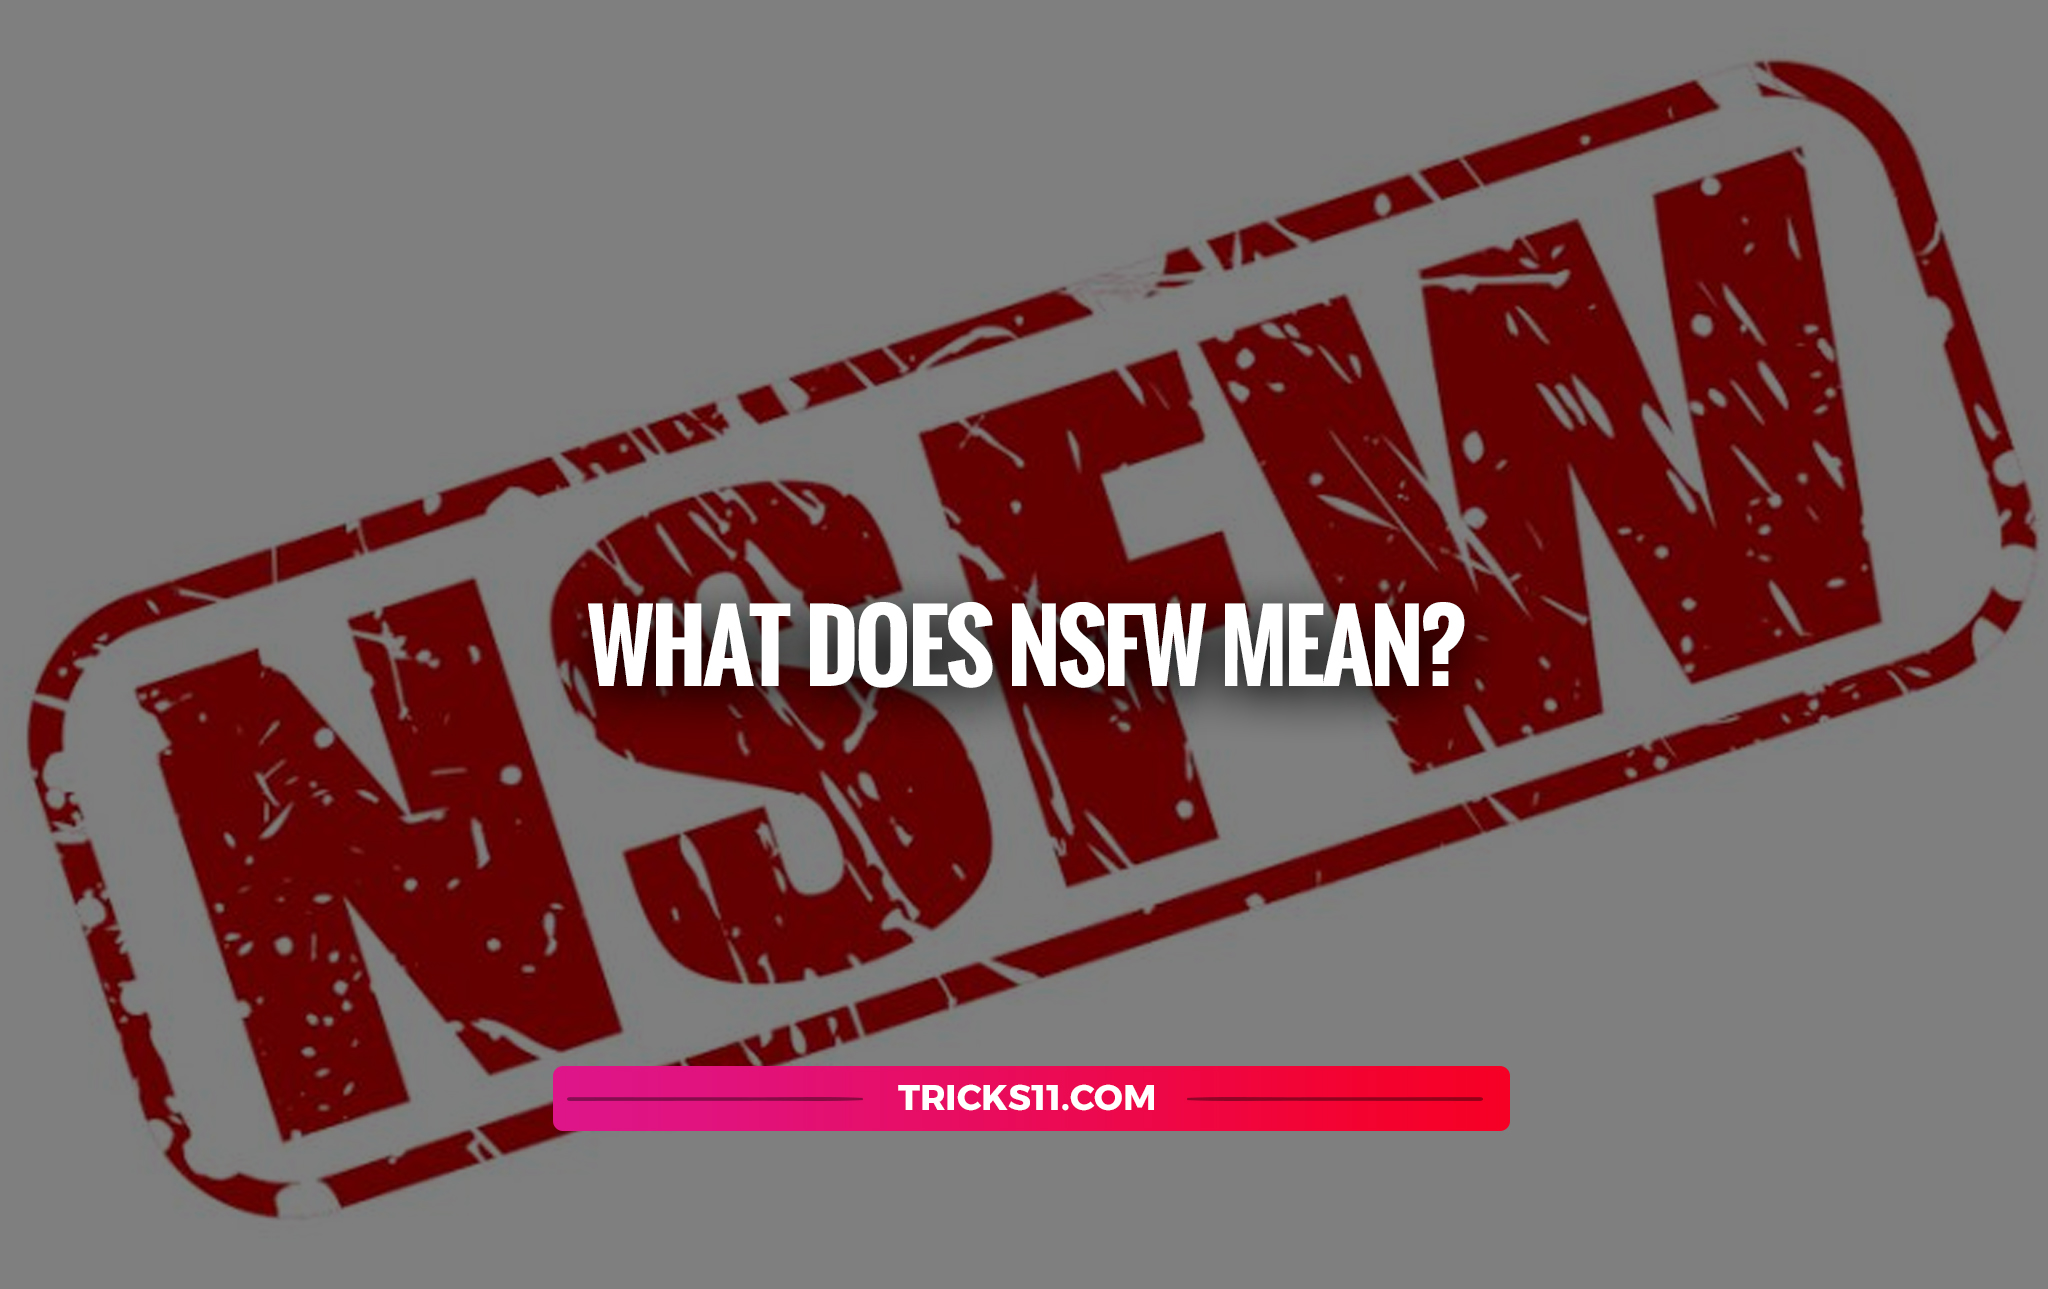 What Does NSFW Mean?